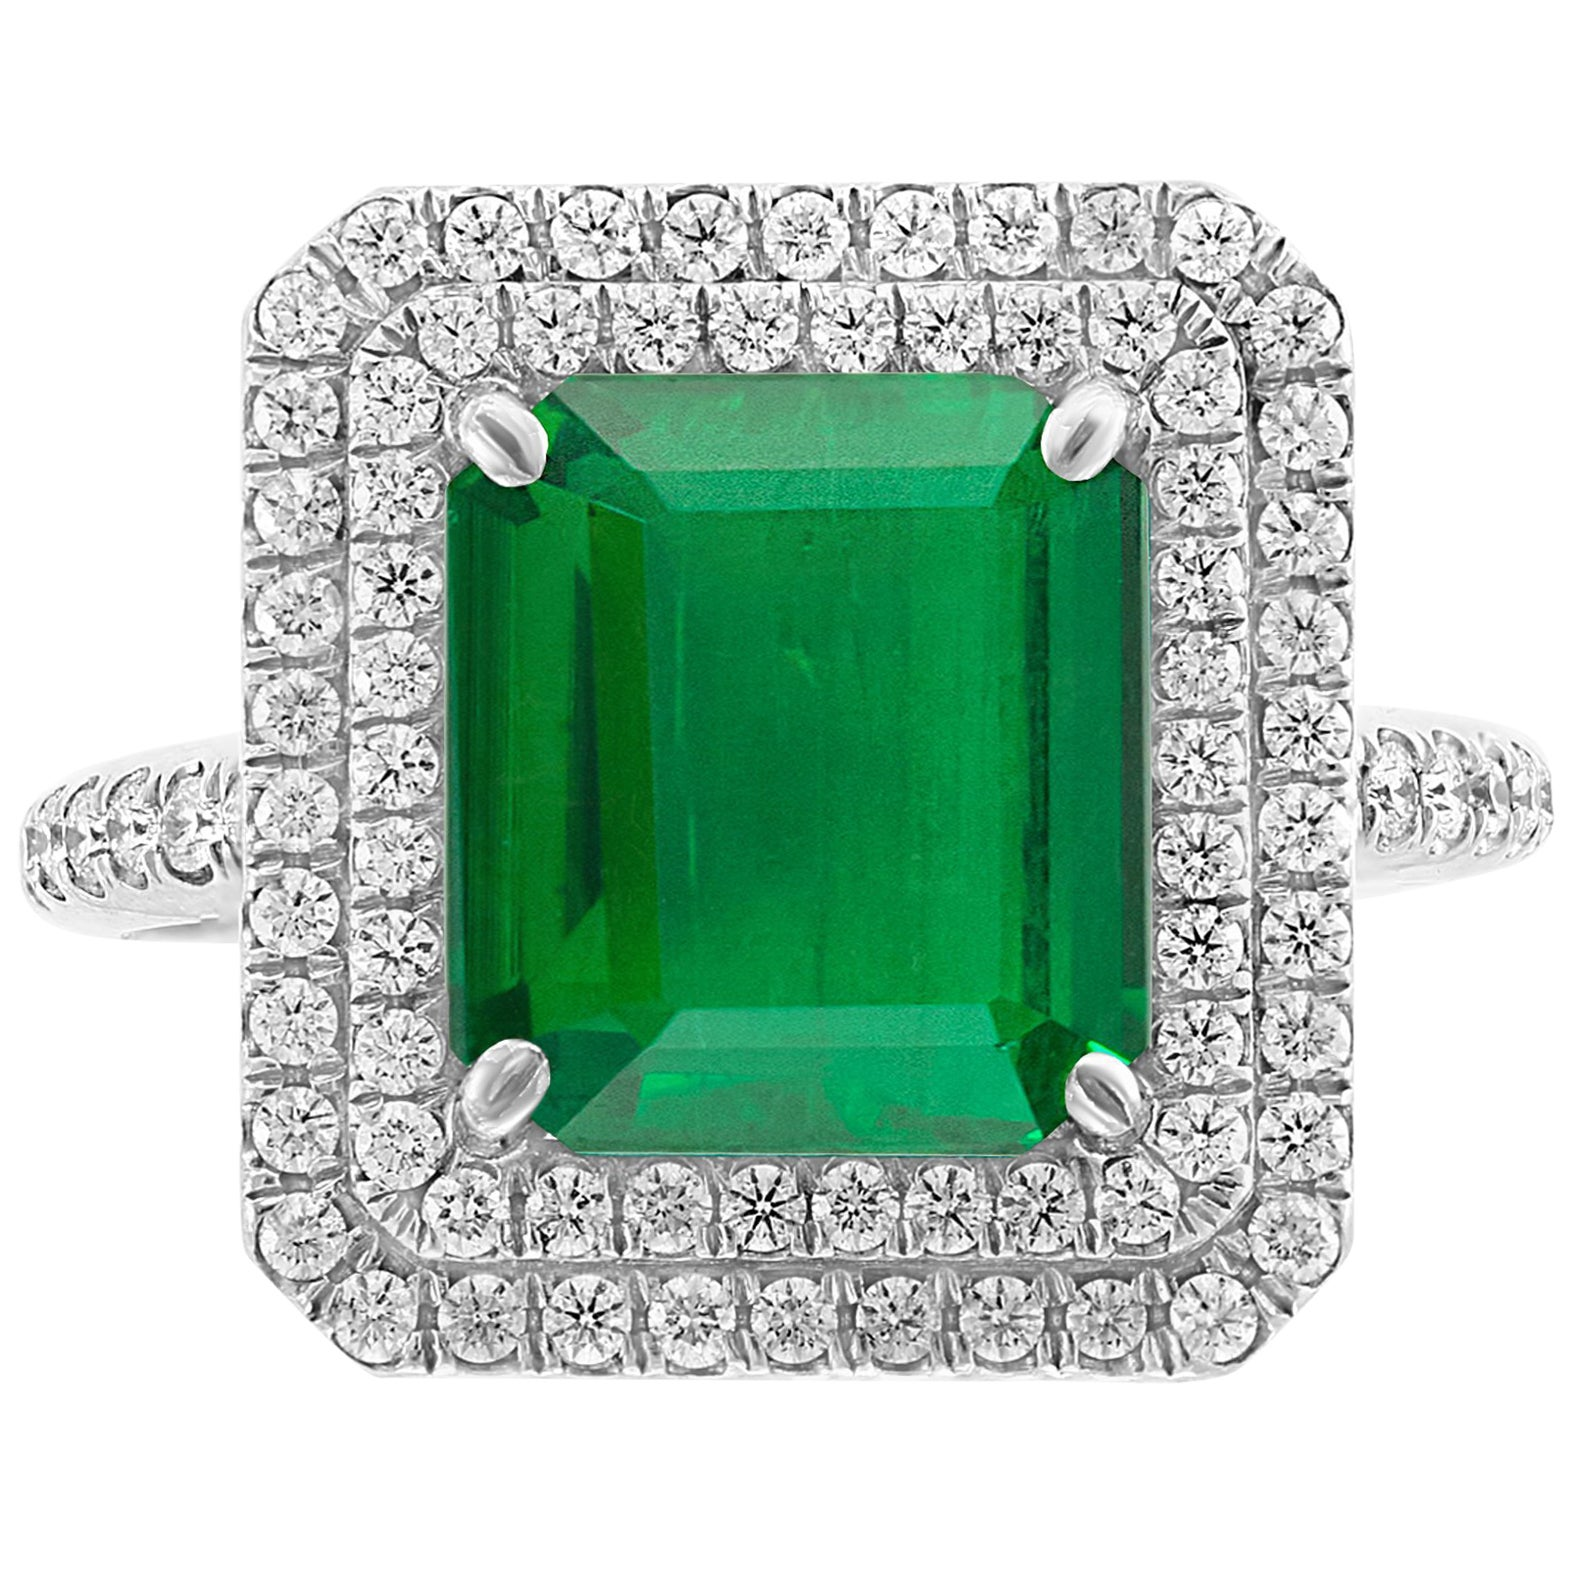 4 Carat Emerald Cut Colombian Emerald and Diamond Platinum Ring Estate